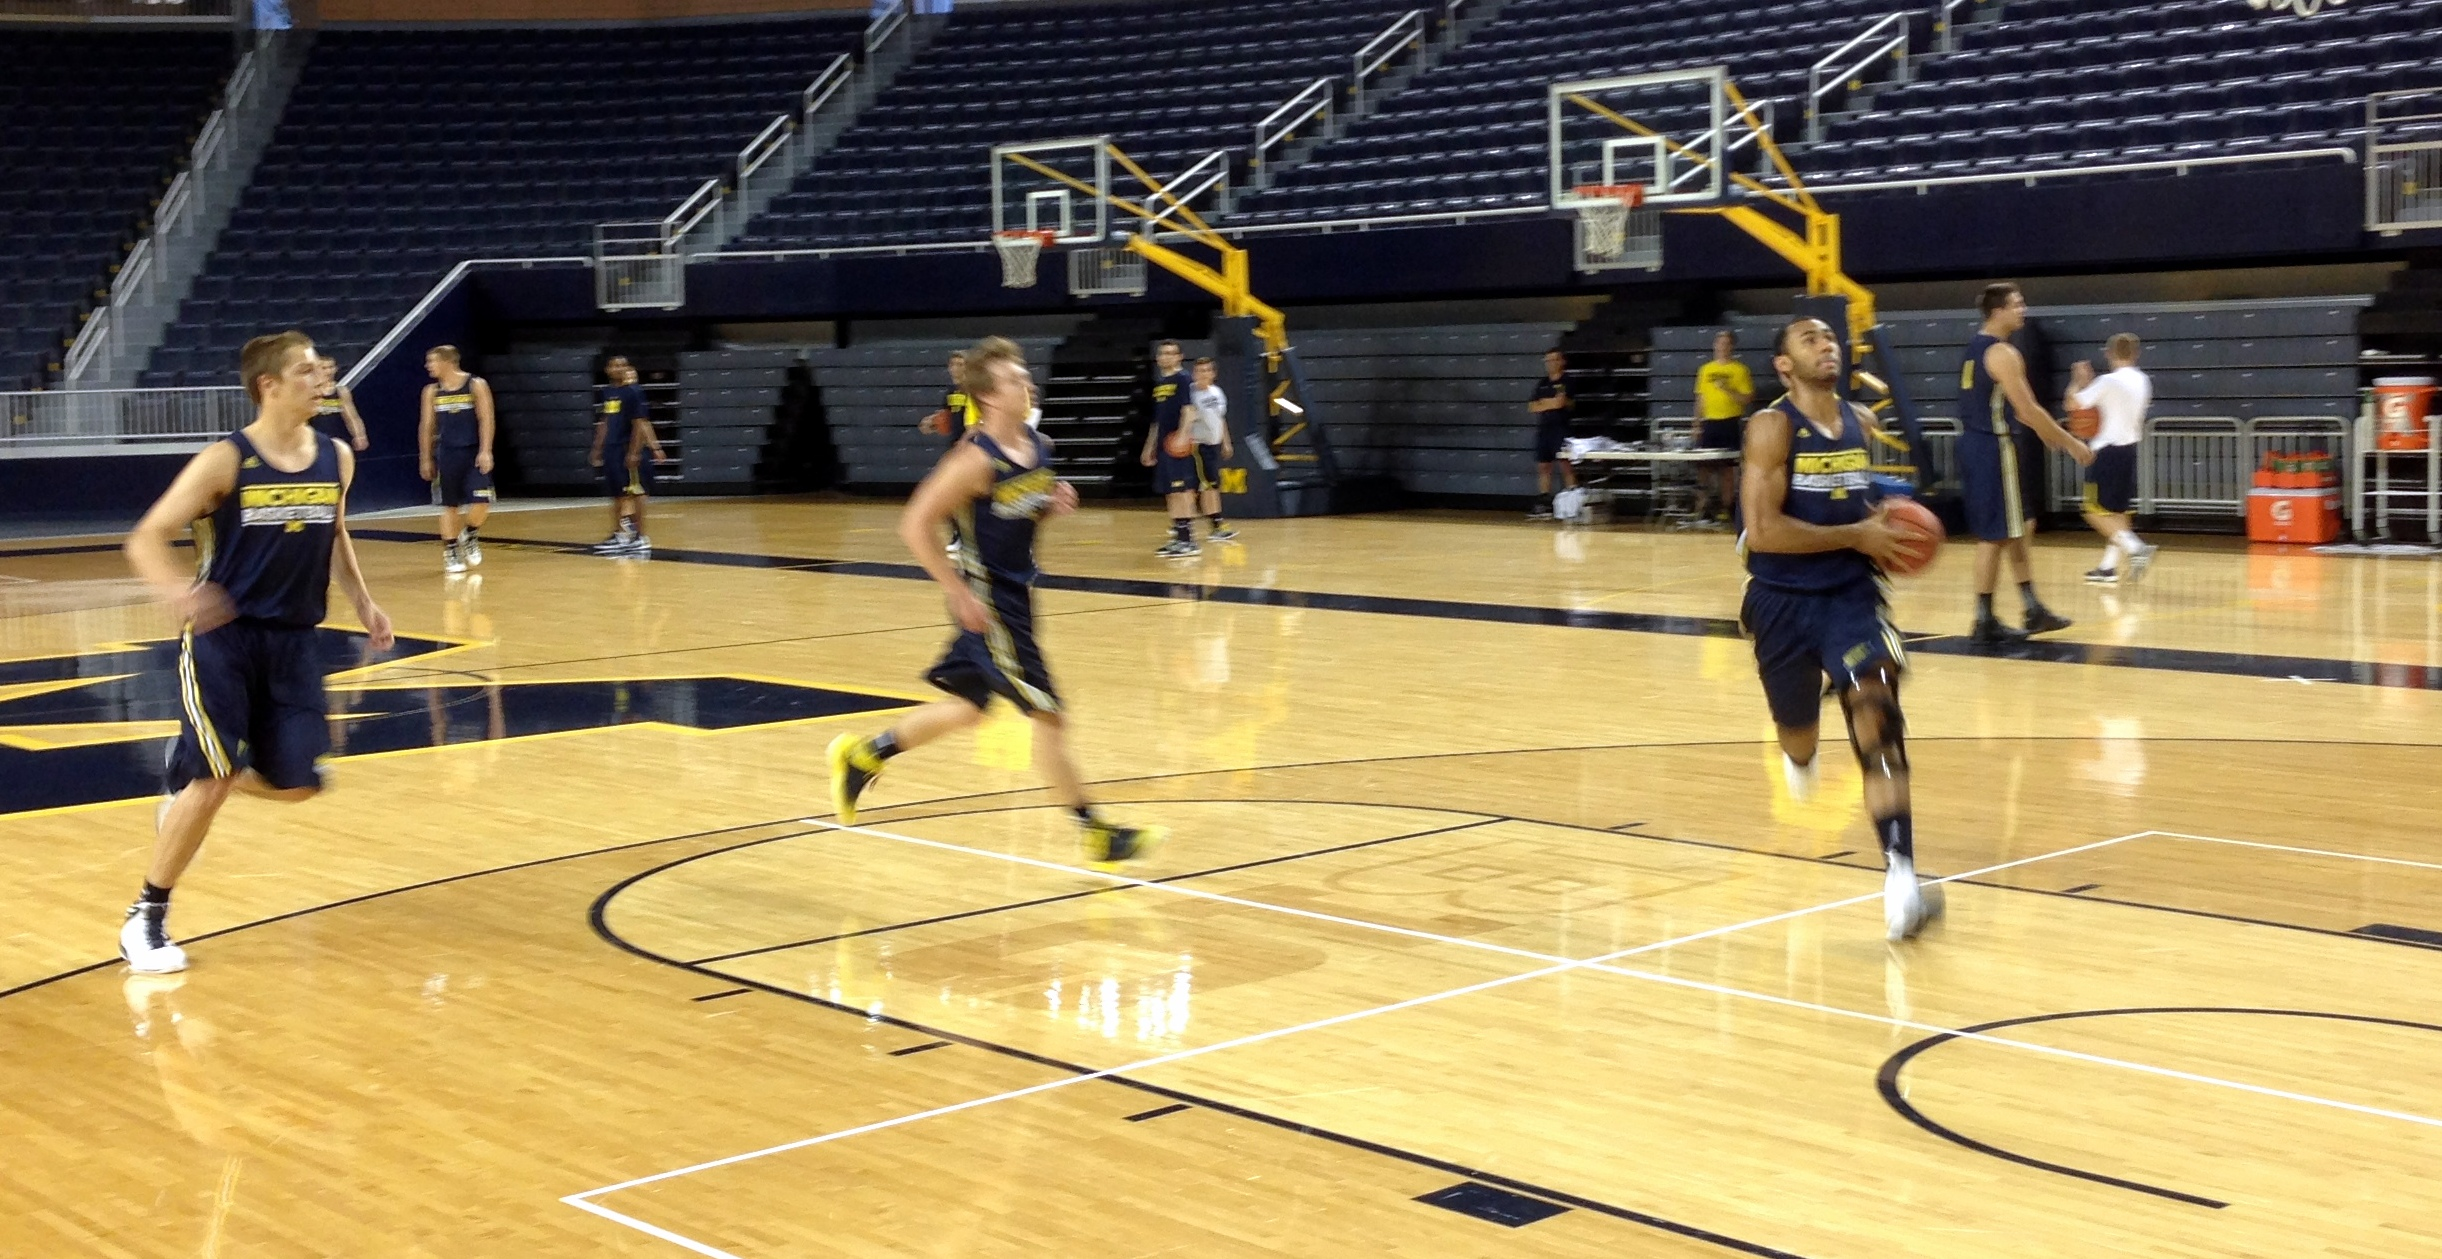 Michigan First Practice – 12